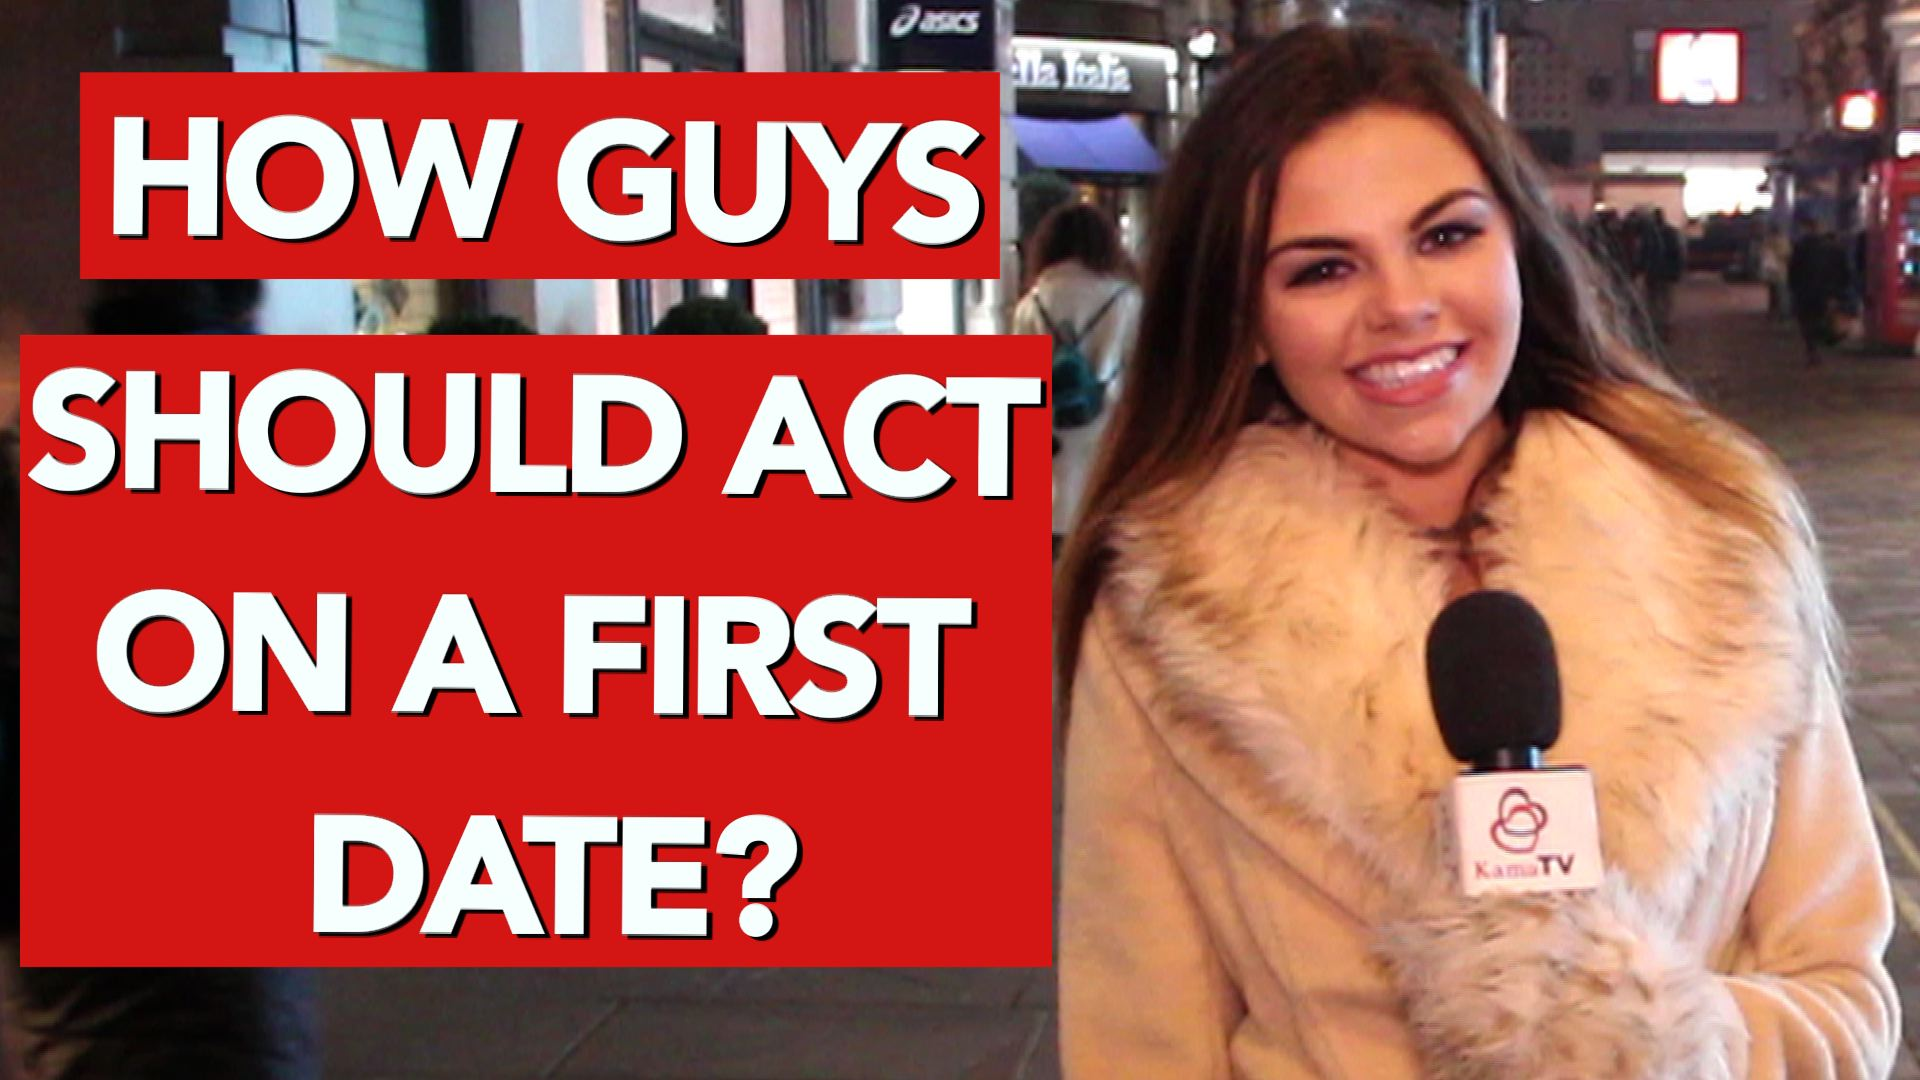 How should guys act on a first date